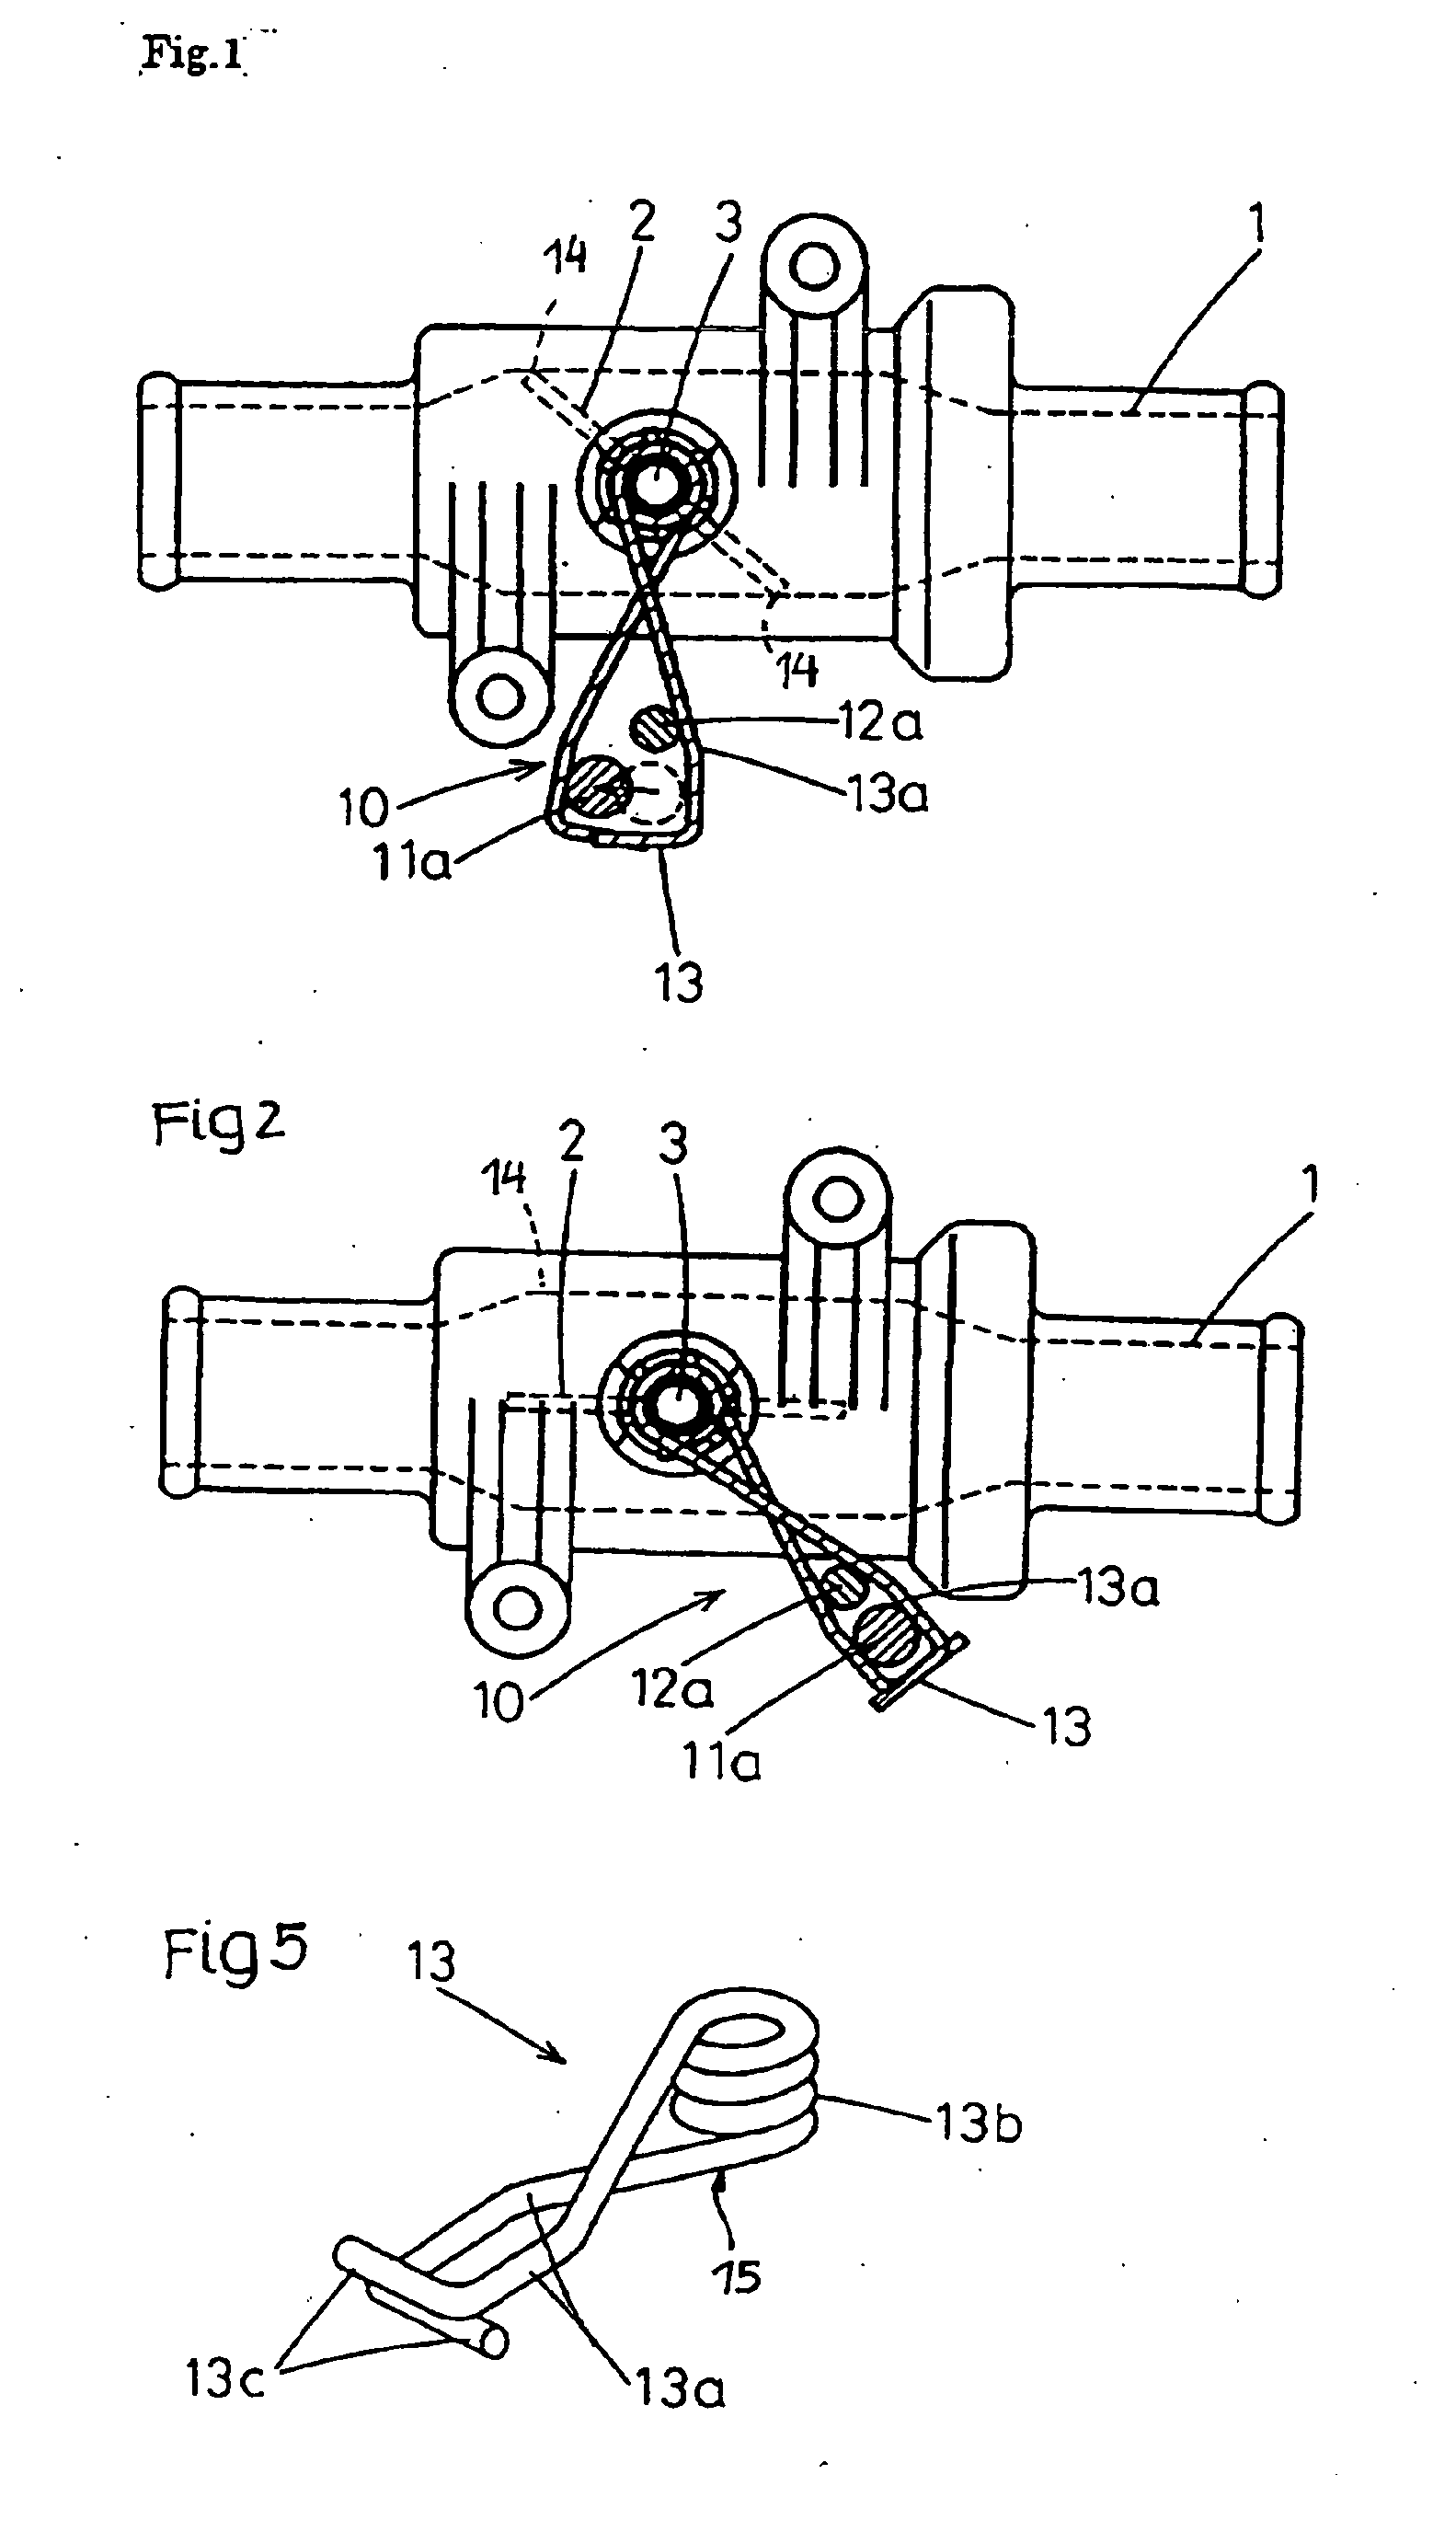 motor operated valve Schaltplang of butterfly